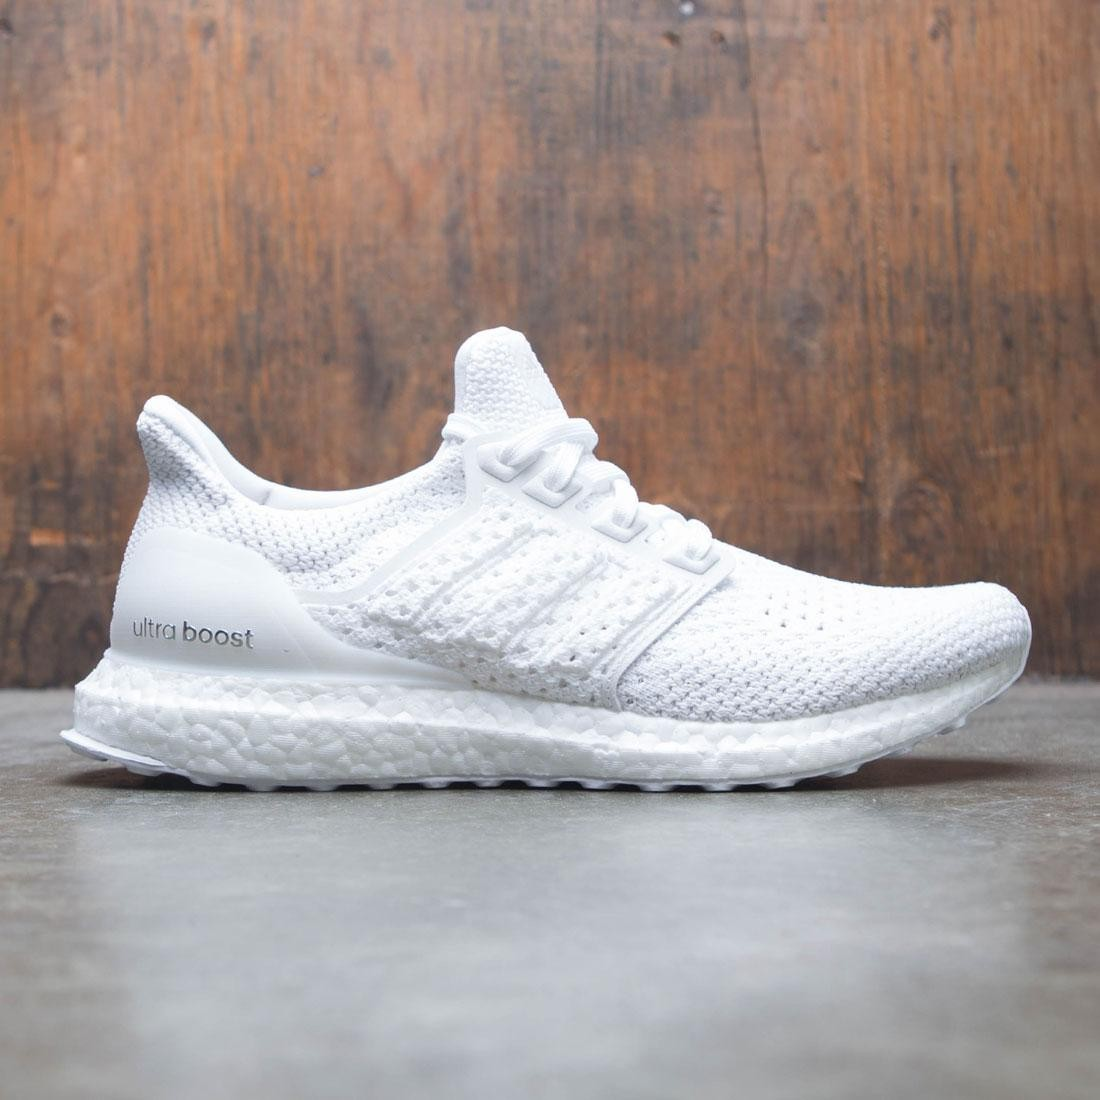 sale retailer f32bf 82ce1 wholesale adidas mens ultra boost running shoes white 36ab2 7c4fd  france adidas  men ultraboost clima white footwear white clear brown 544fa 3241d